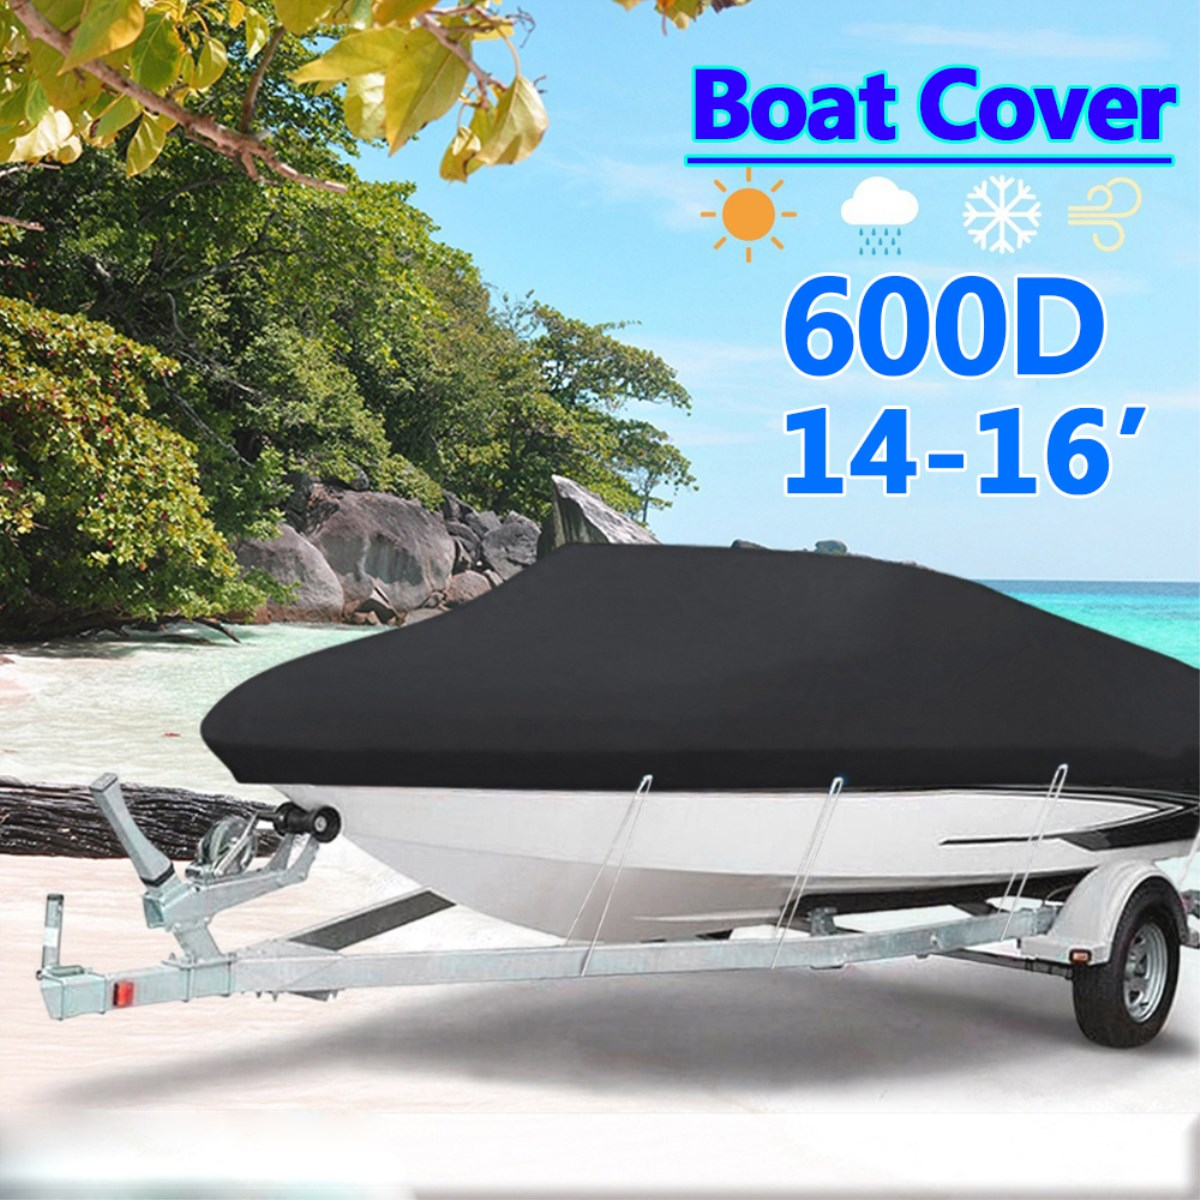 Black Heavy Duty 14-16ft 600D Beam 90inch Trailerable Marine Grade Boat Cover for Yacht Boat Waterproof Anti-UV Boat Accessories heavy duty 60v 600a marine dual battery selector switch for boat rv semi motor yacht boats red abd black page 7